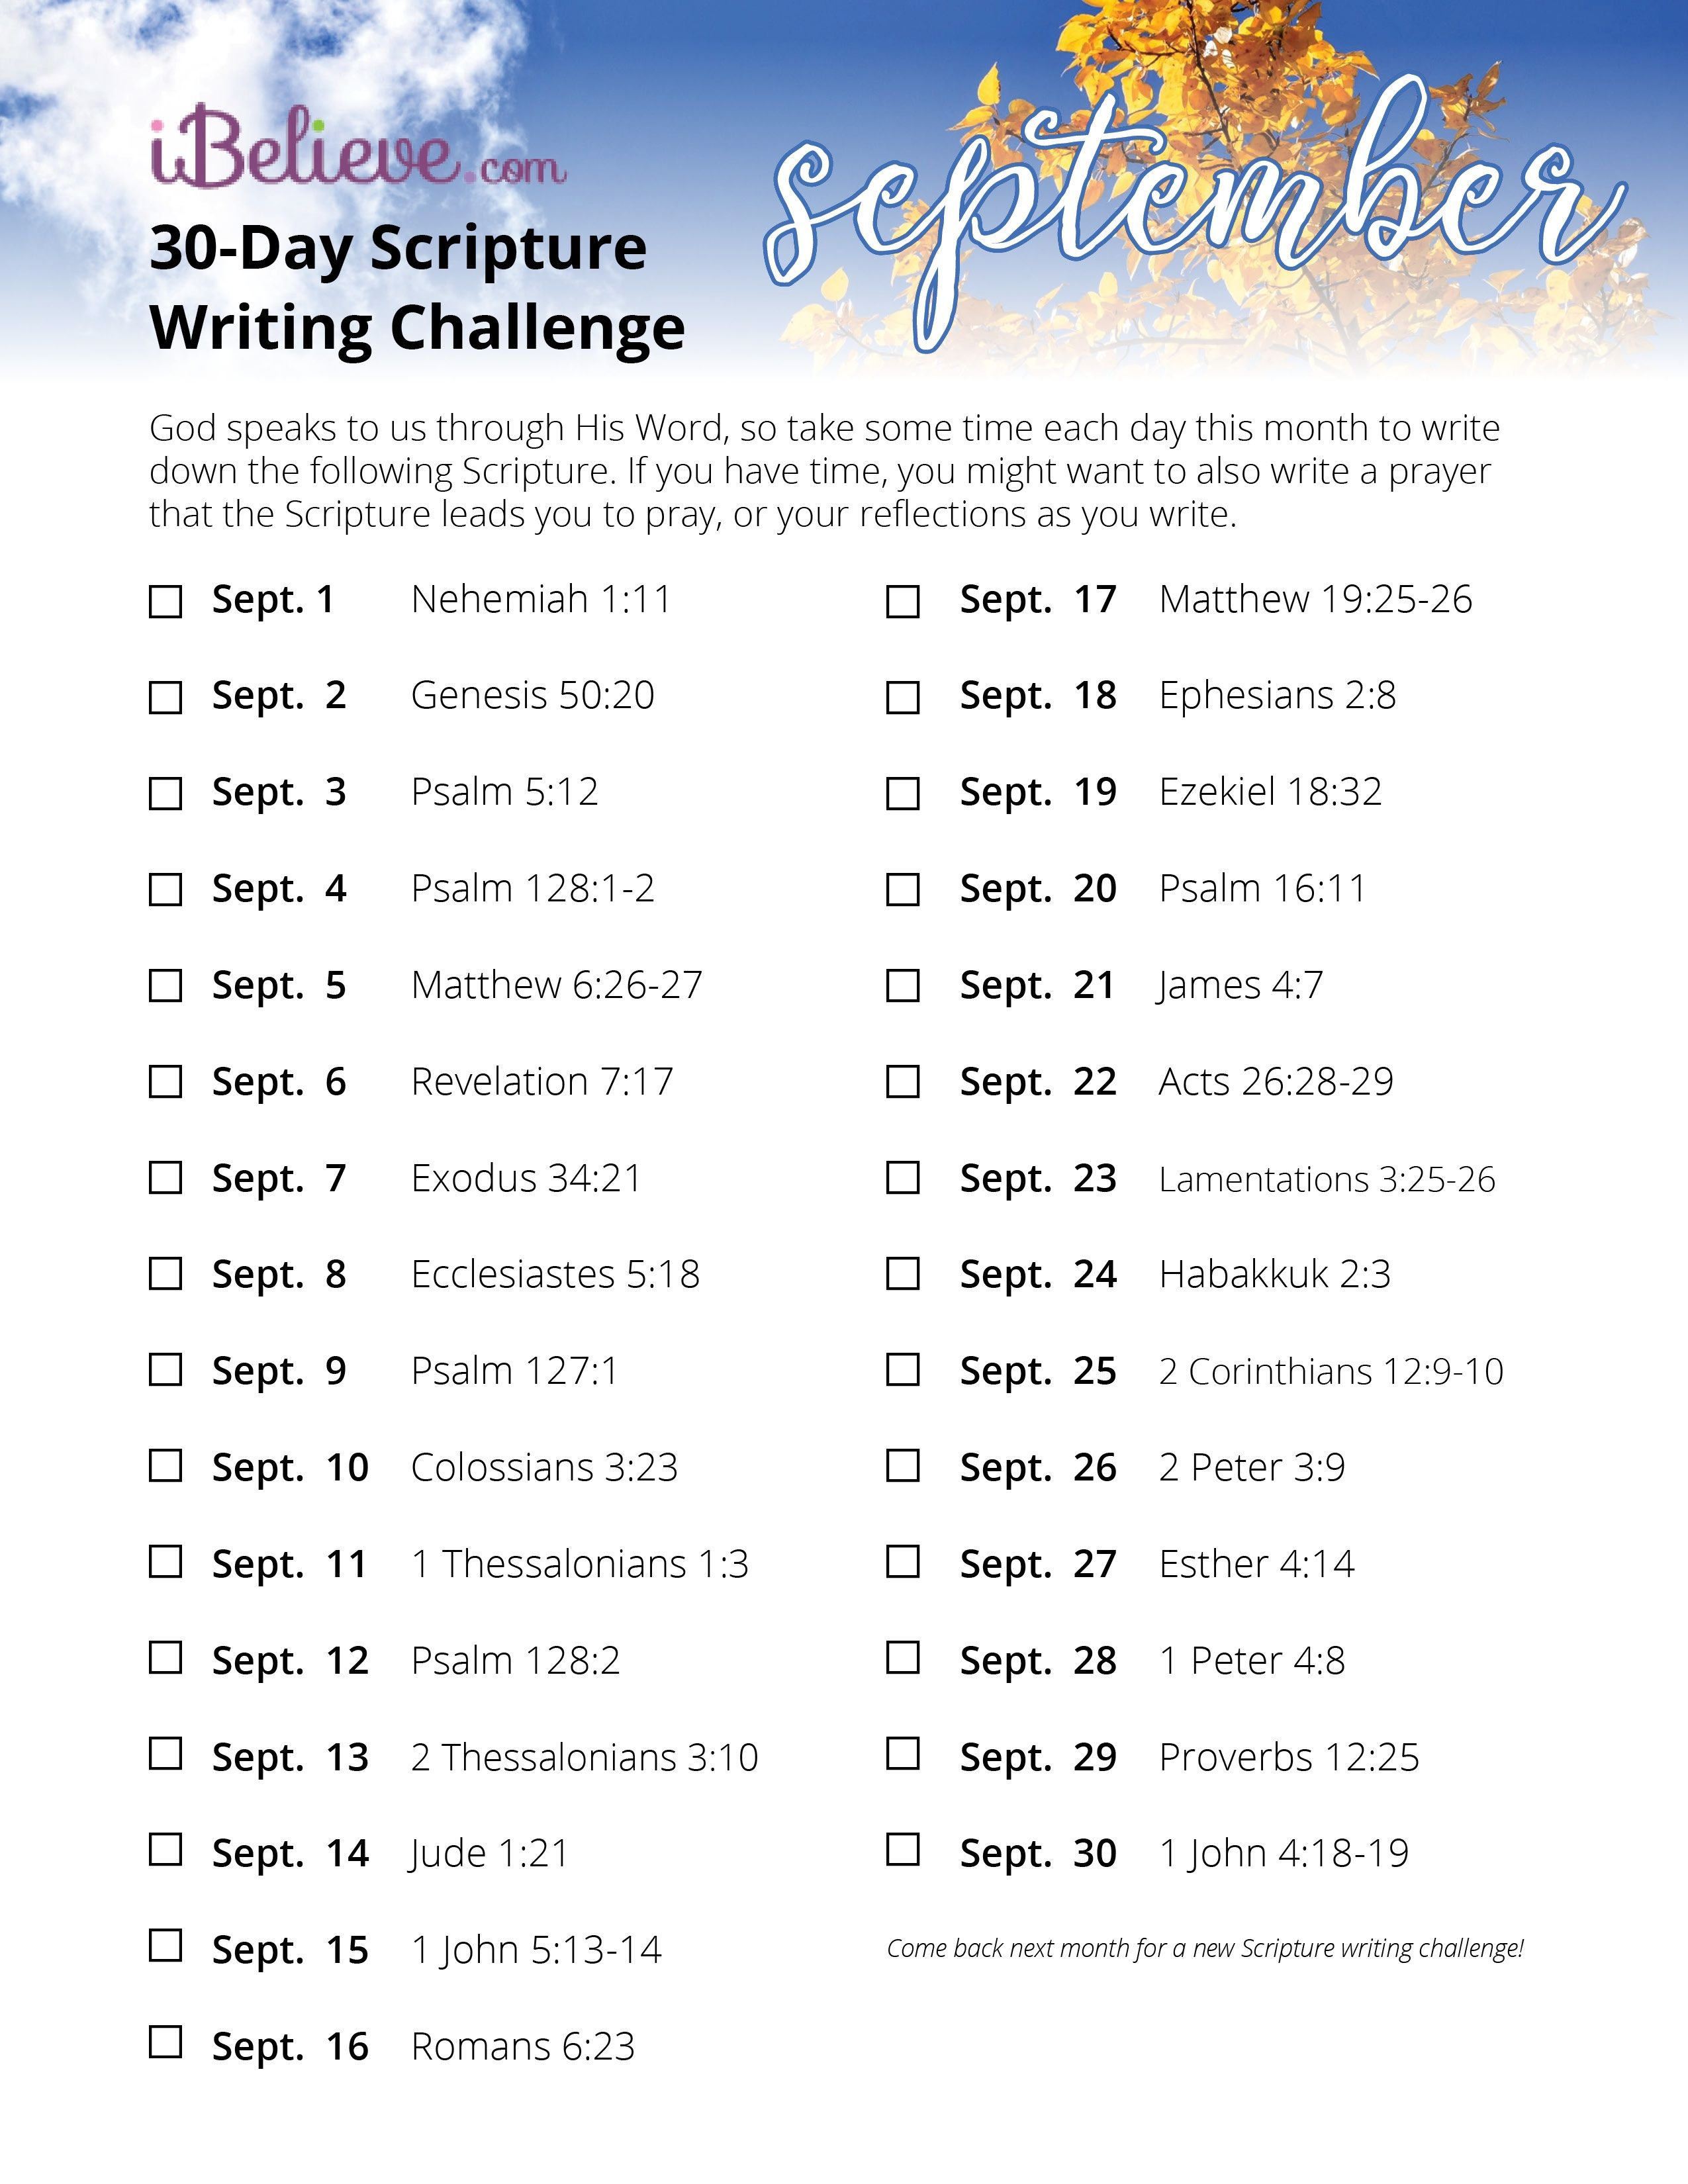 Writing Guide September Scripture Writing Guide 2018 Inside Ibelieve Bible